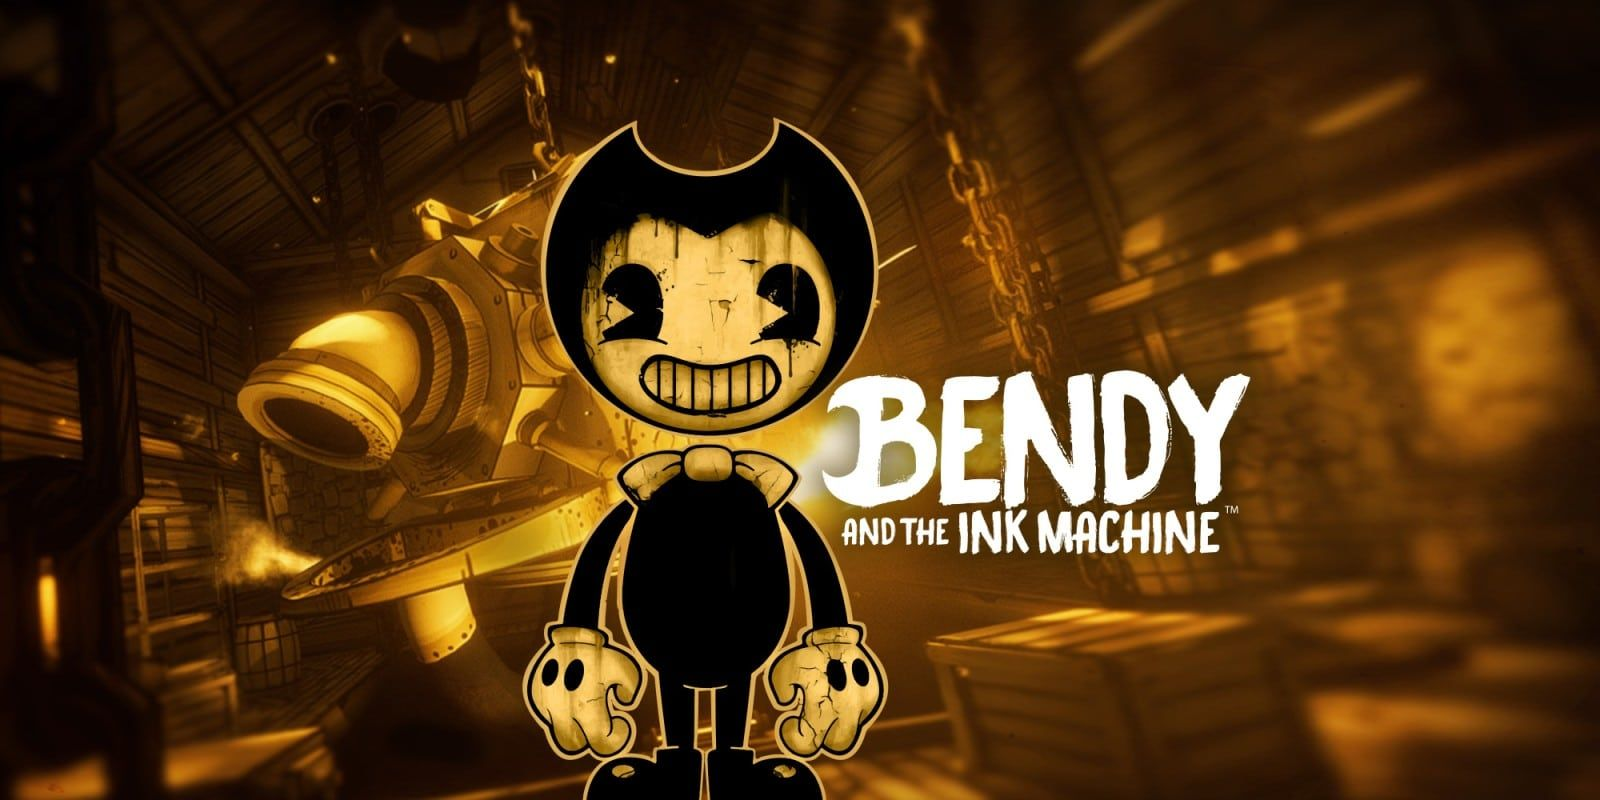 Bendy And The Ink Machine Available Bendy The Ink Machine